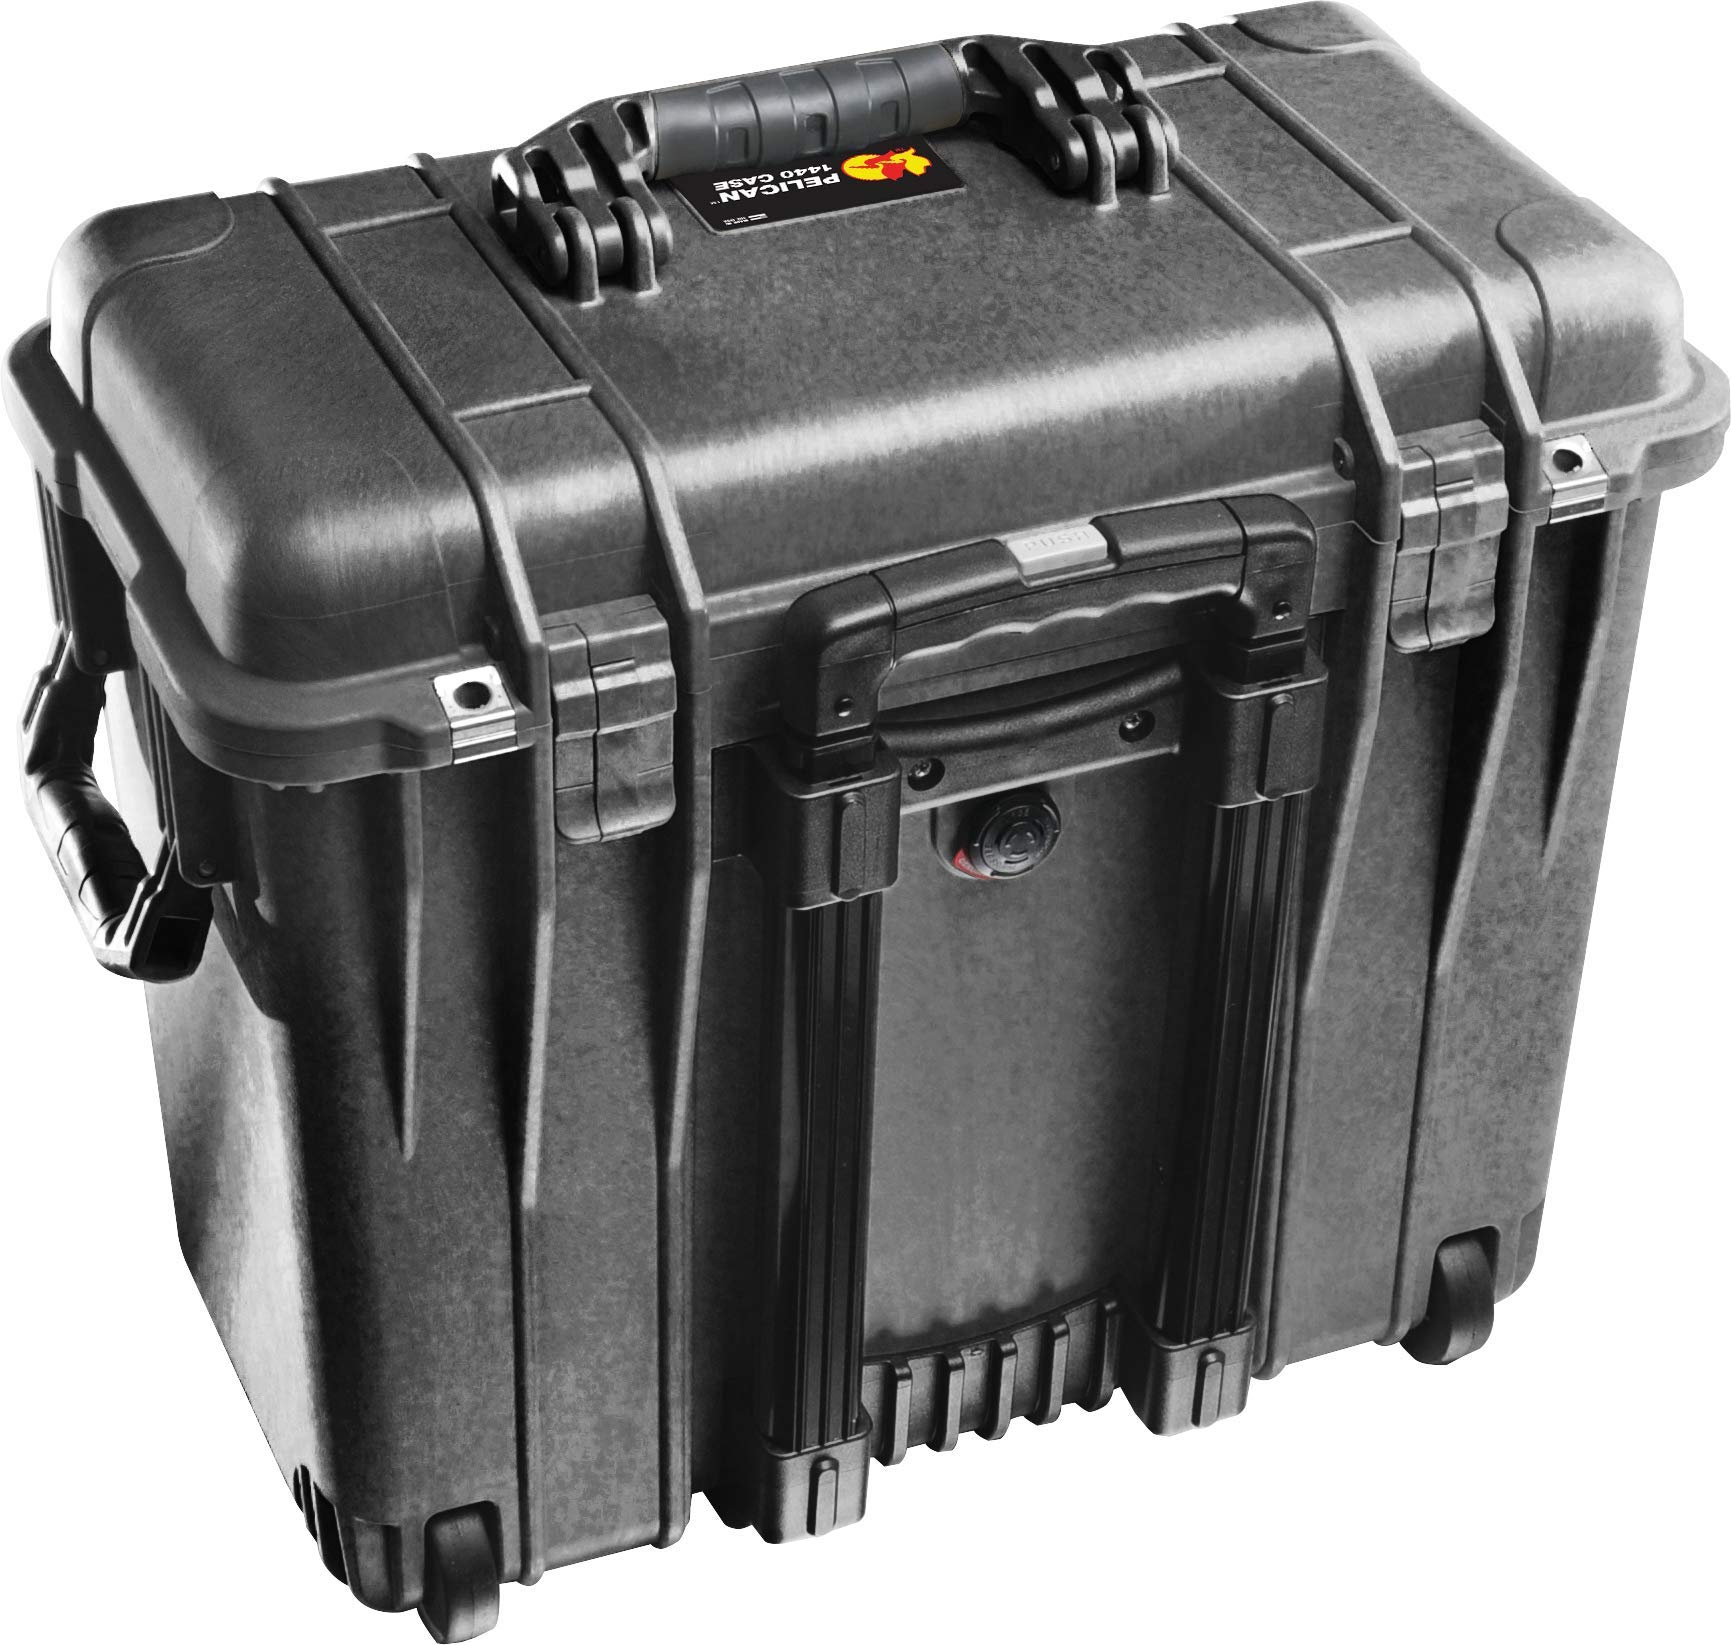 Pelican 1440 Camera Case With Foam (Black) by Pelican